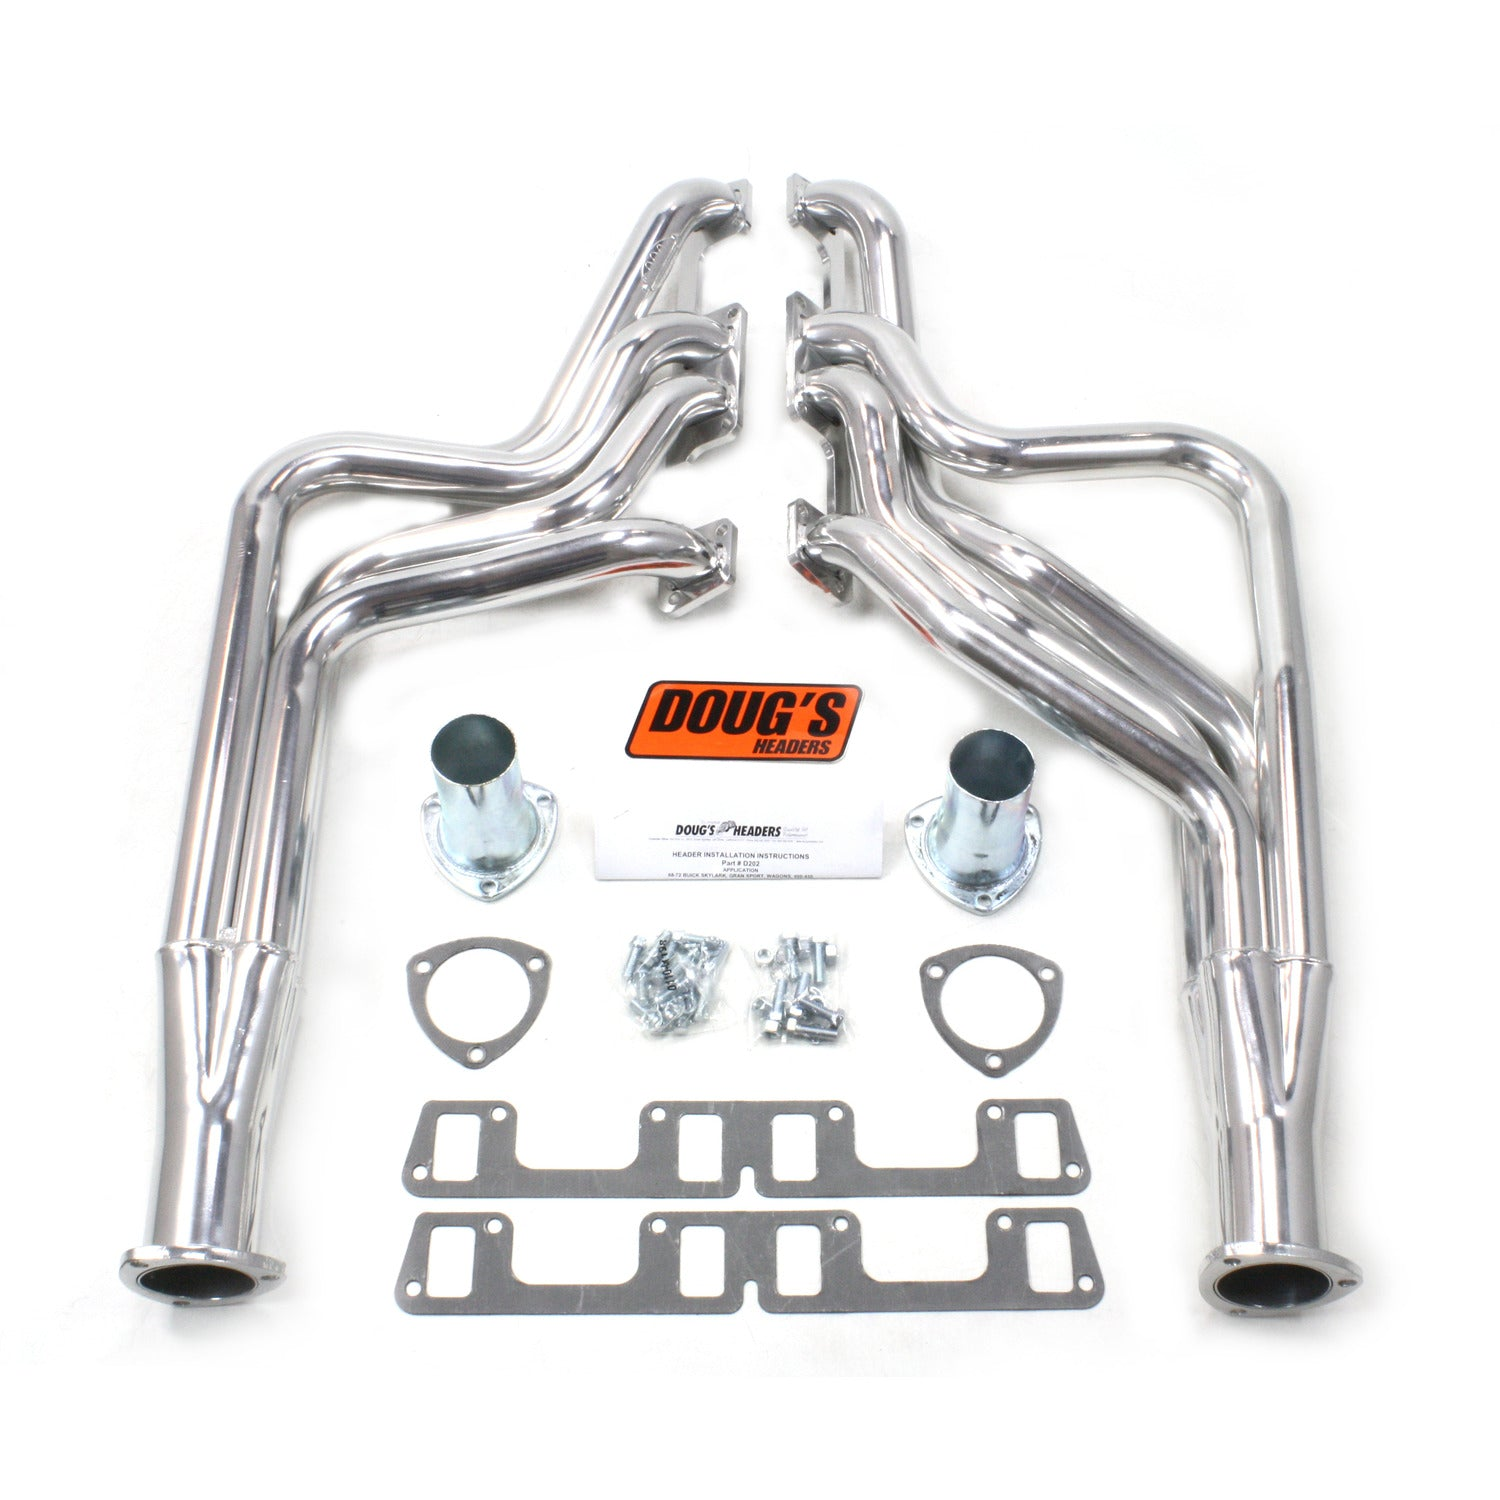 "Doug's Headers D202 1 7/8"" 4-Tube Full Length Header Buick Skylark 400-455 68-72 Metallic Ceramic Coating"